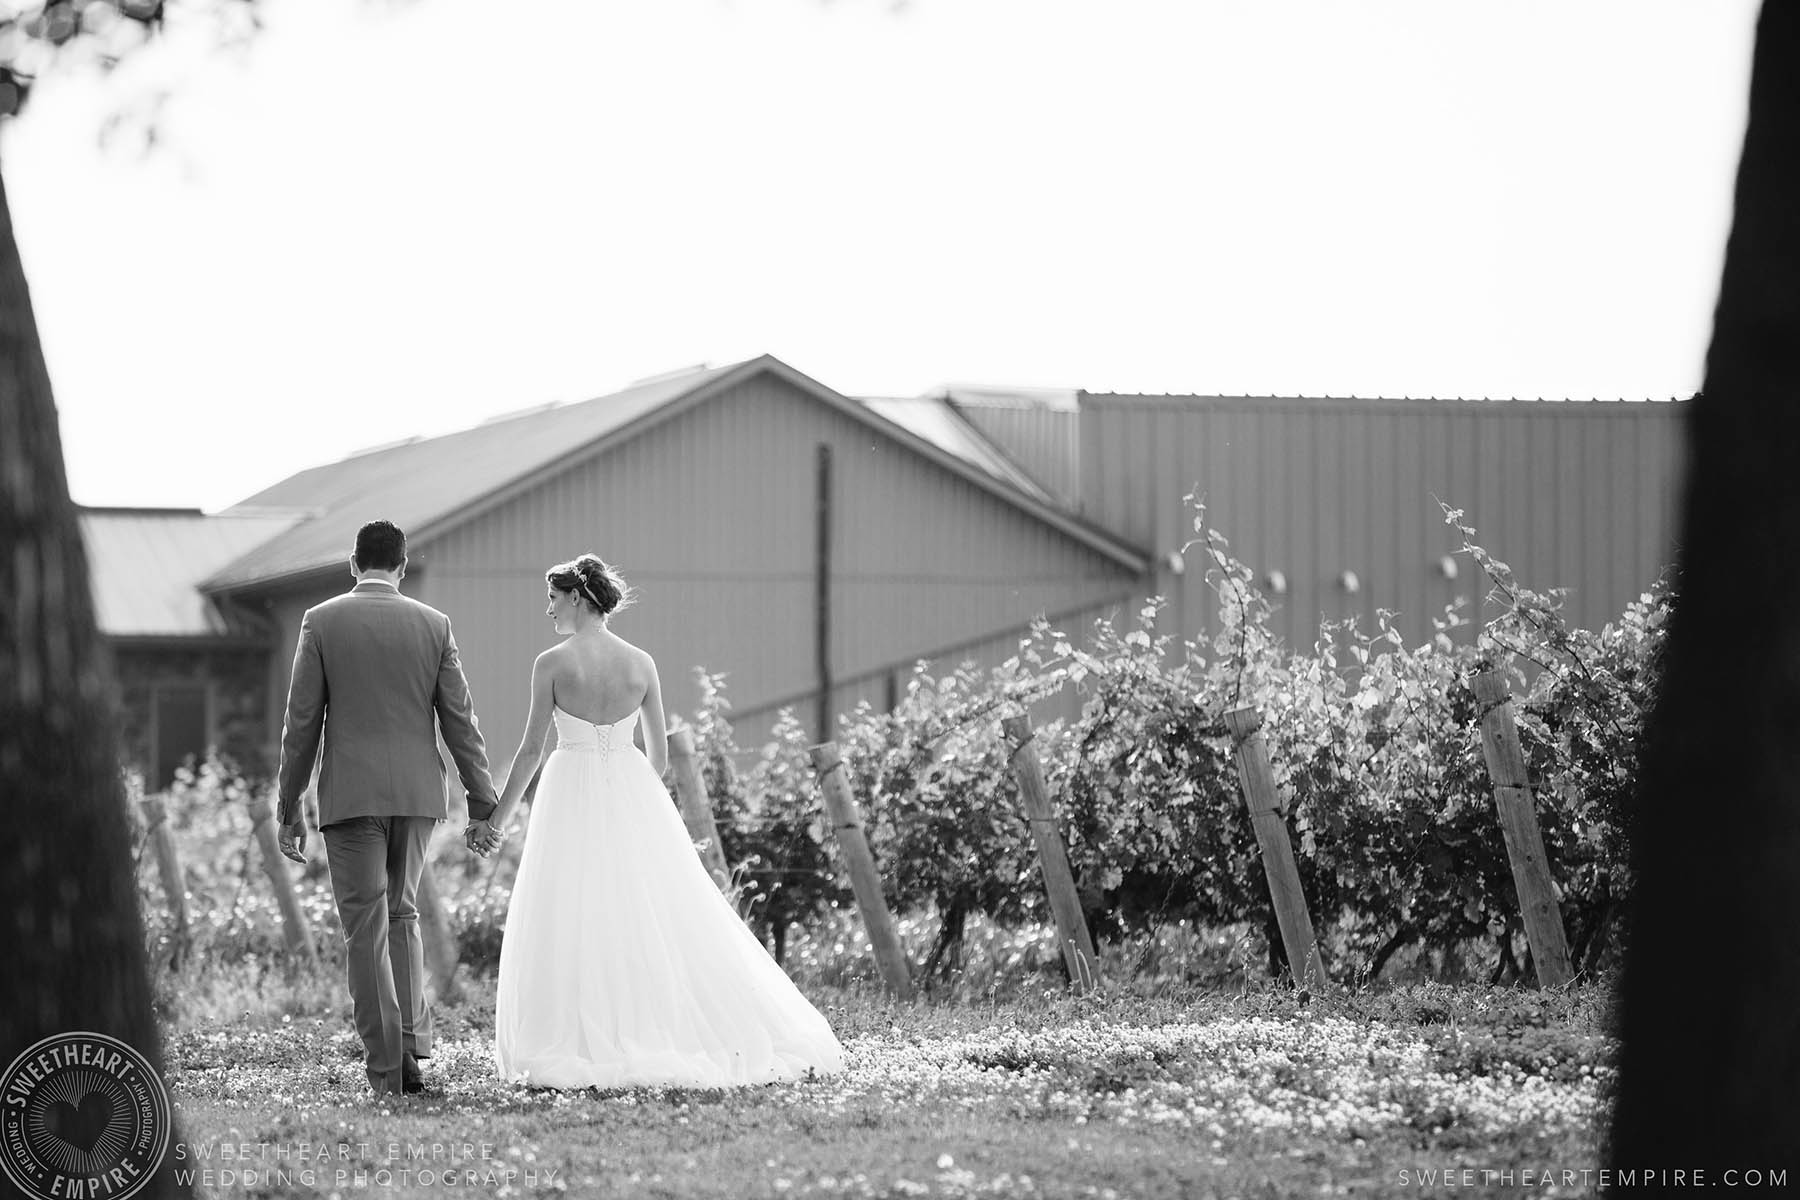 Bride and groom walking through the vineyards, Rockway Vineyard Wedding, Niagara